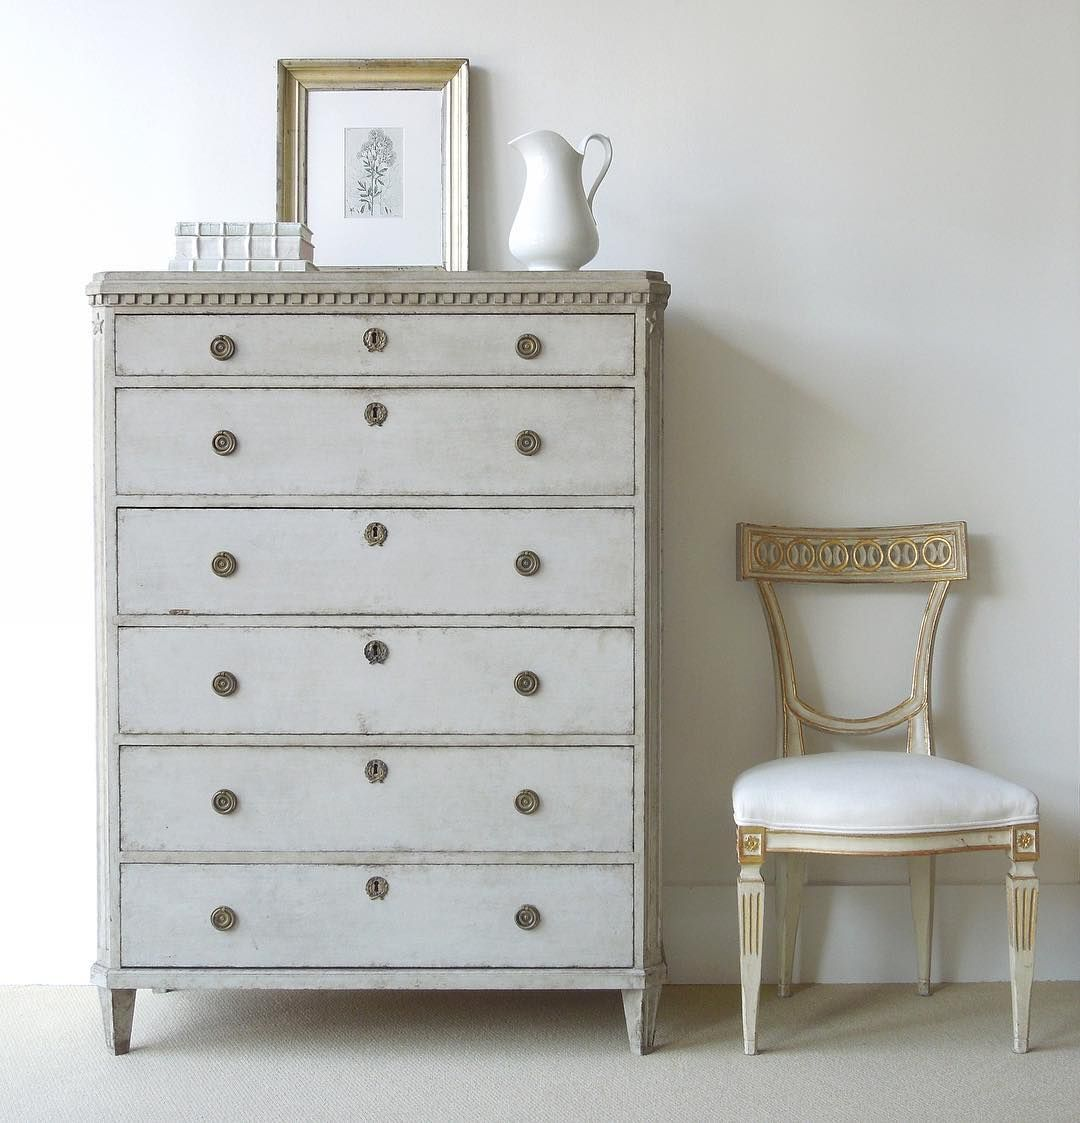 Hereu0027s A Swedish Gustavian Gray Painted Tall Chest With Six Drawers, One  For Each Day Of The Week. Oops Missing One Drawer   Ok, Letu0027s Skip Monday  Wouldnu0027t ... Pictures